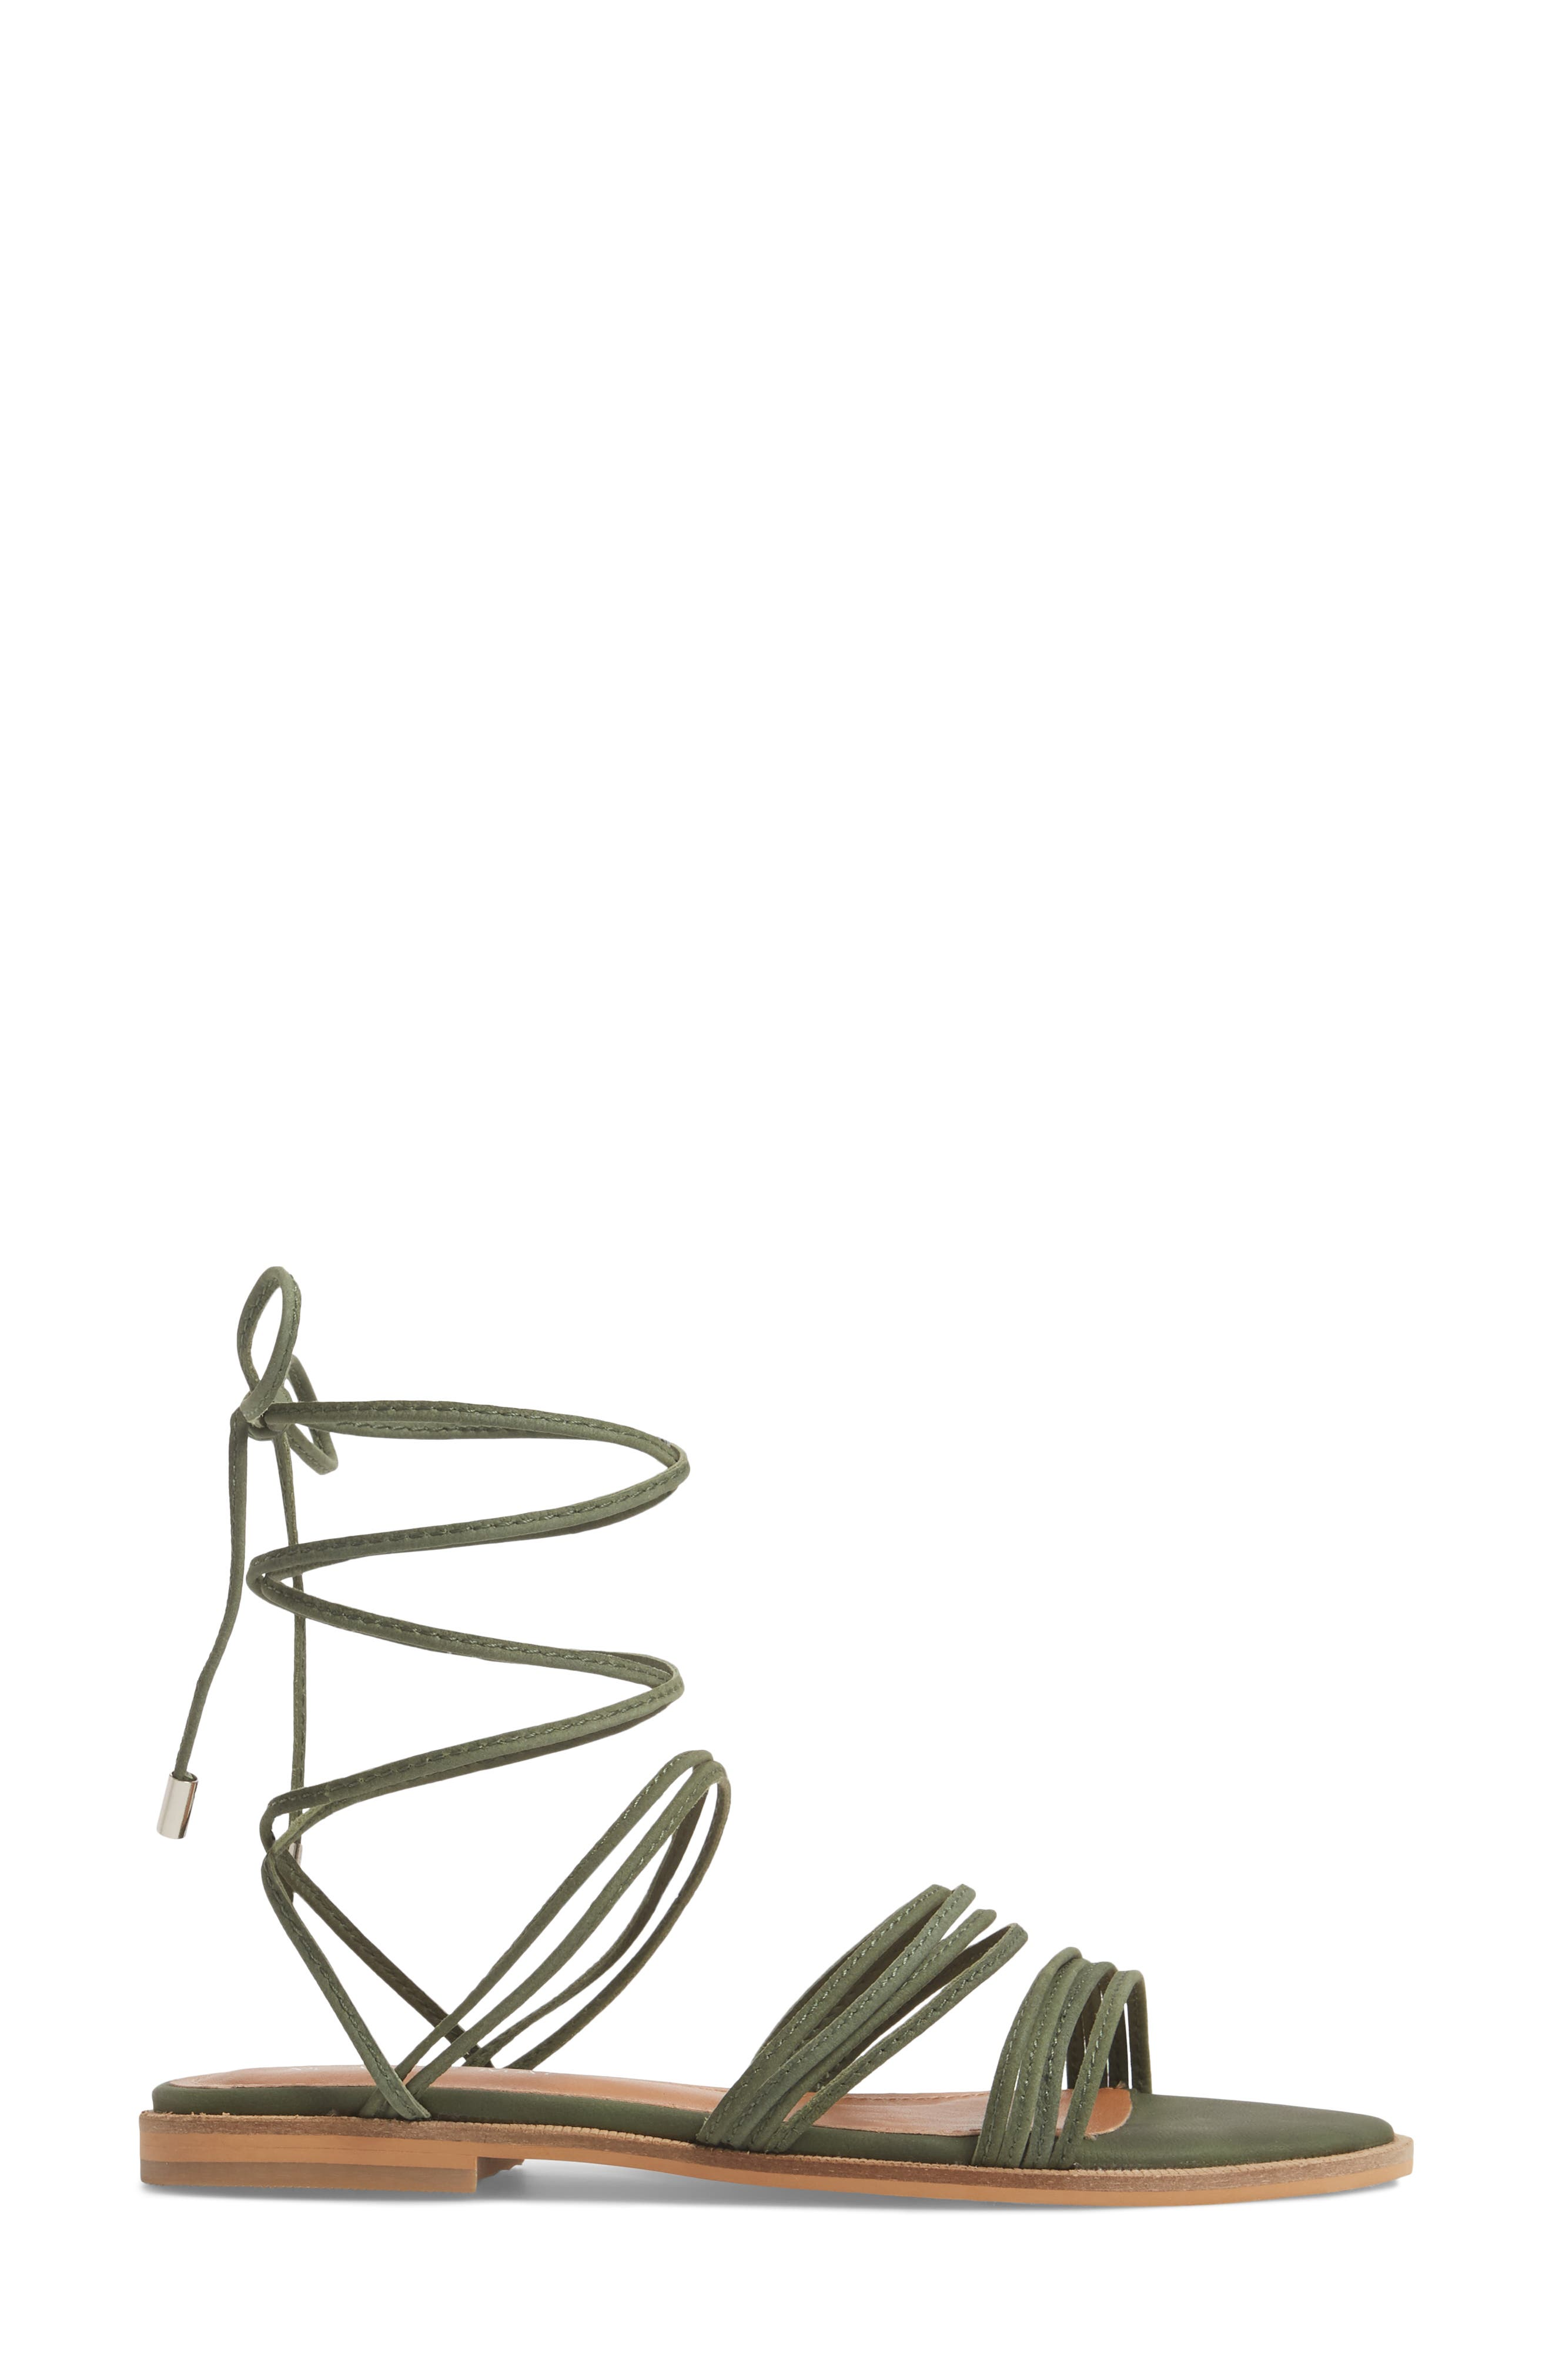 Theory Strappy Flat Sandal,                             Alternate thumbnail 9, color,